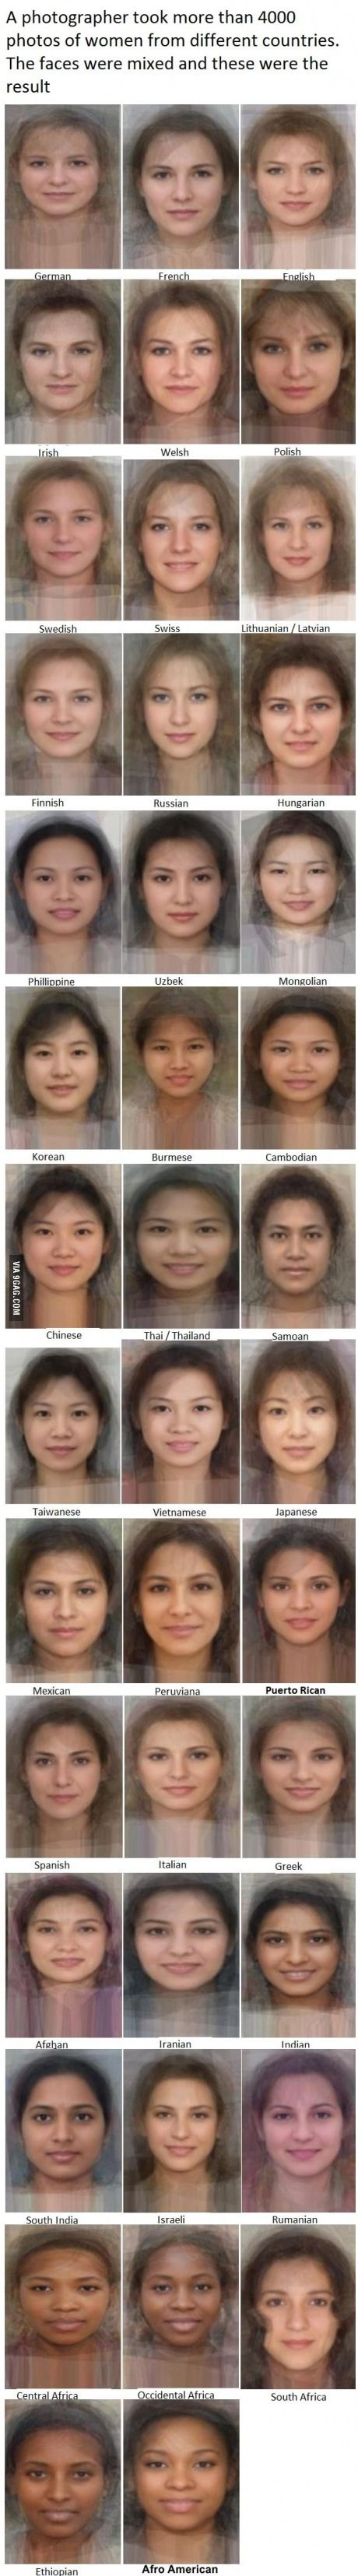 Average face from women from different countries, and they are all still beautiful.